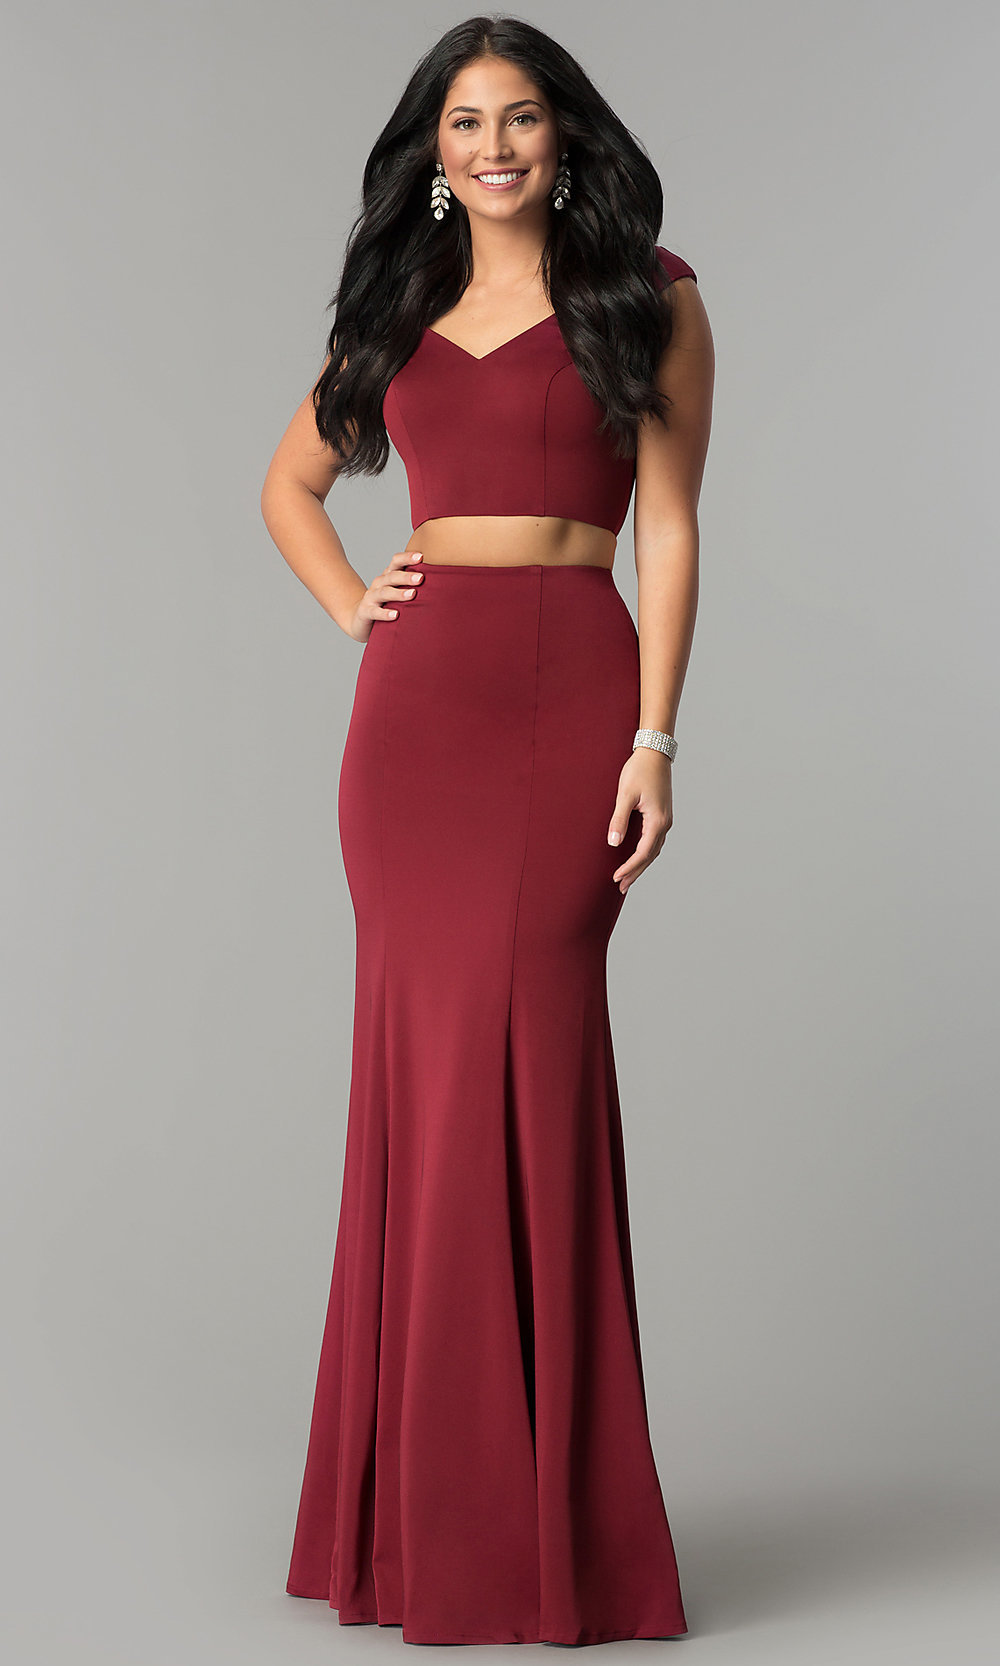 2a3ad8faacf8 Mermaid Off-the-Shoulder Long Two-Piece Prom Dress